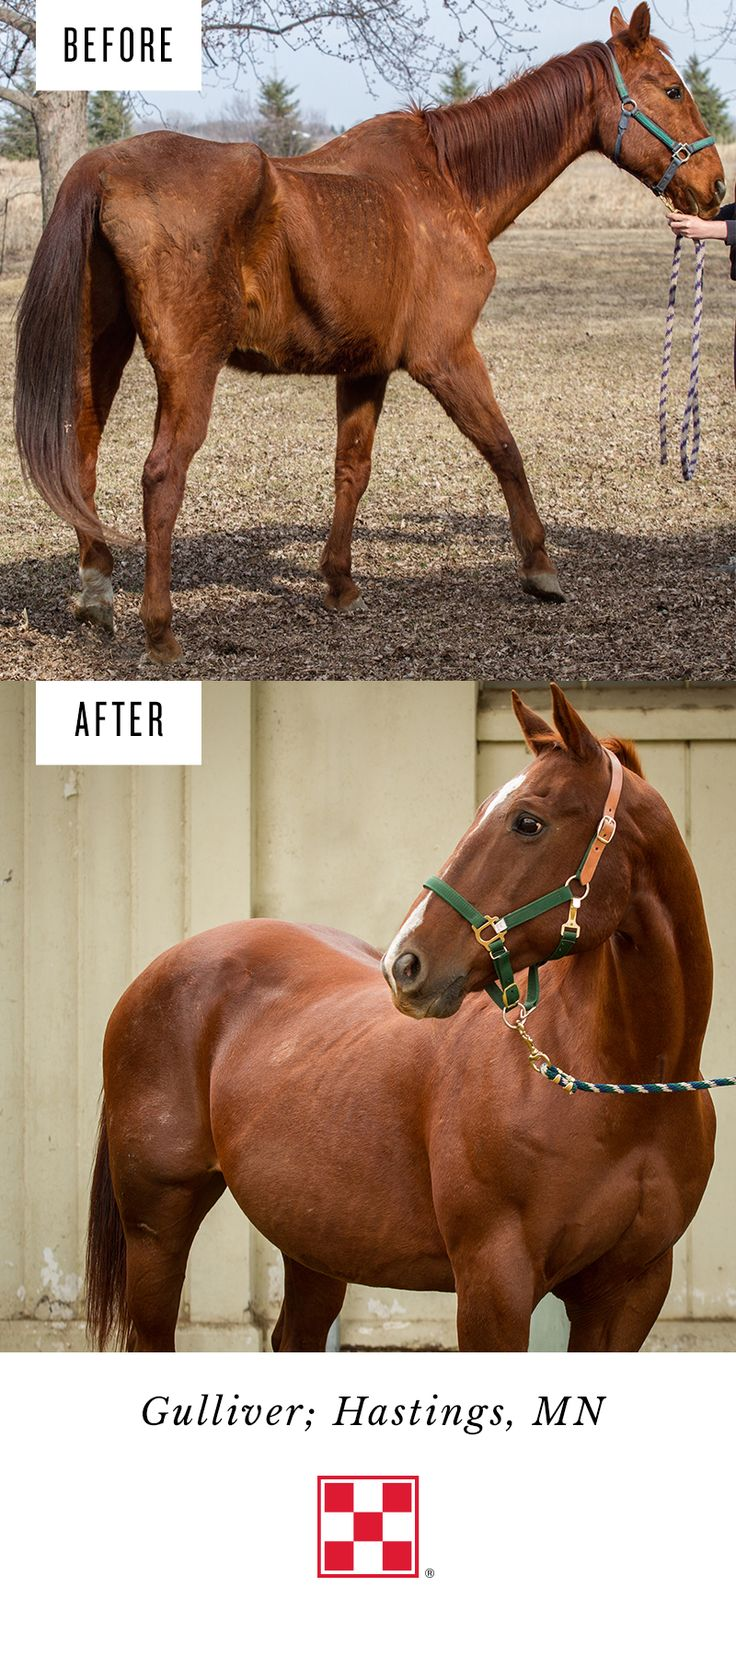 "We are always touched to receive updates like this from rescue shelters that have benefitted from our partnership with A Home for Every Horse. Gulliver looks amazing thanks to This Old Horse, Inc. in Hastings, Minnesota. Founder Nancy T. says,    ""Gulliver is one of our more recent rescues. He was featured at the Minnesota Harvest Horse Show this fall as we celebrated his seven-month journey from Starved to Star!"